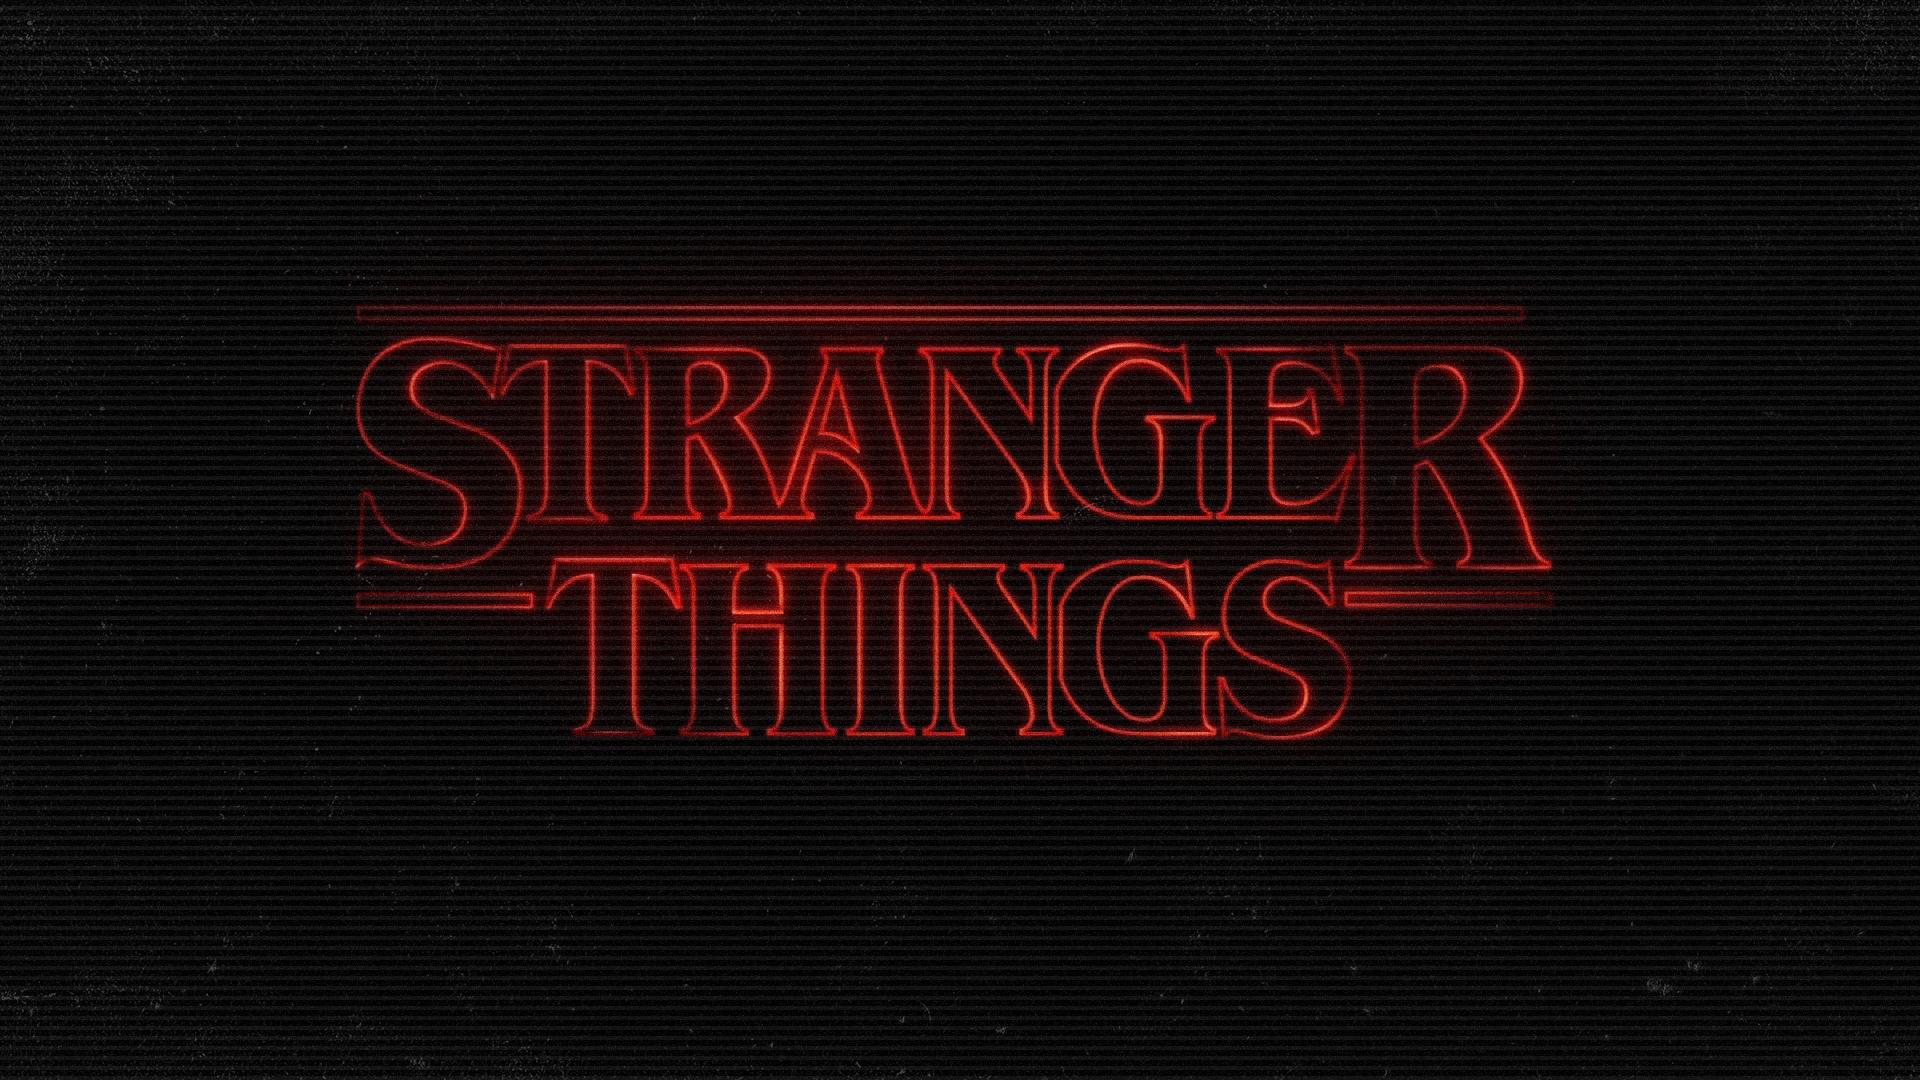 stranger things logo wallpaper 56292